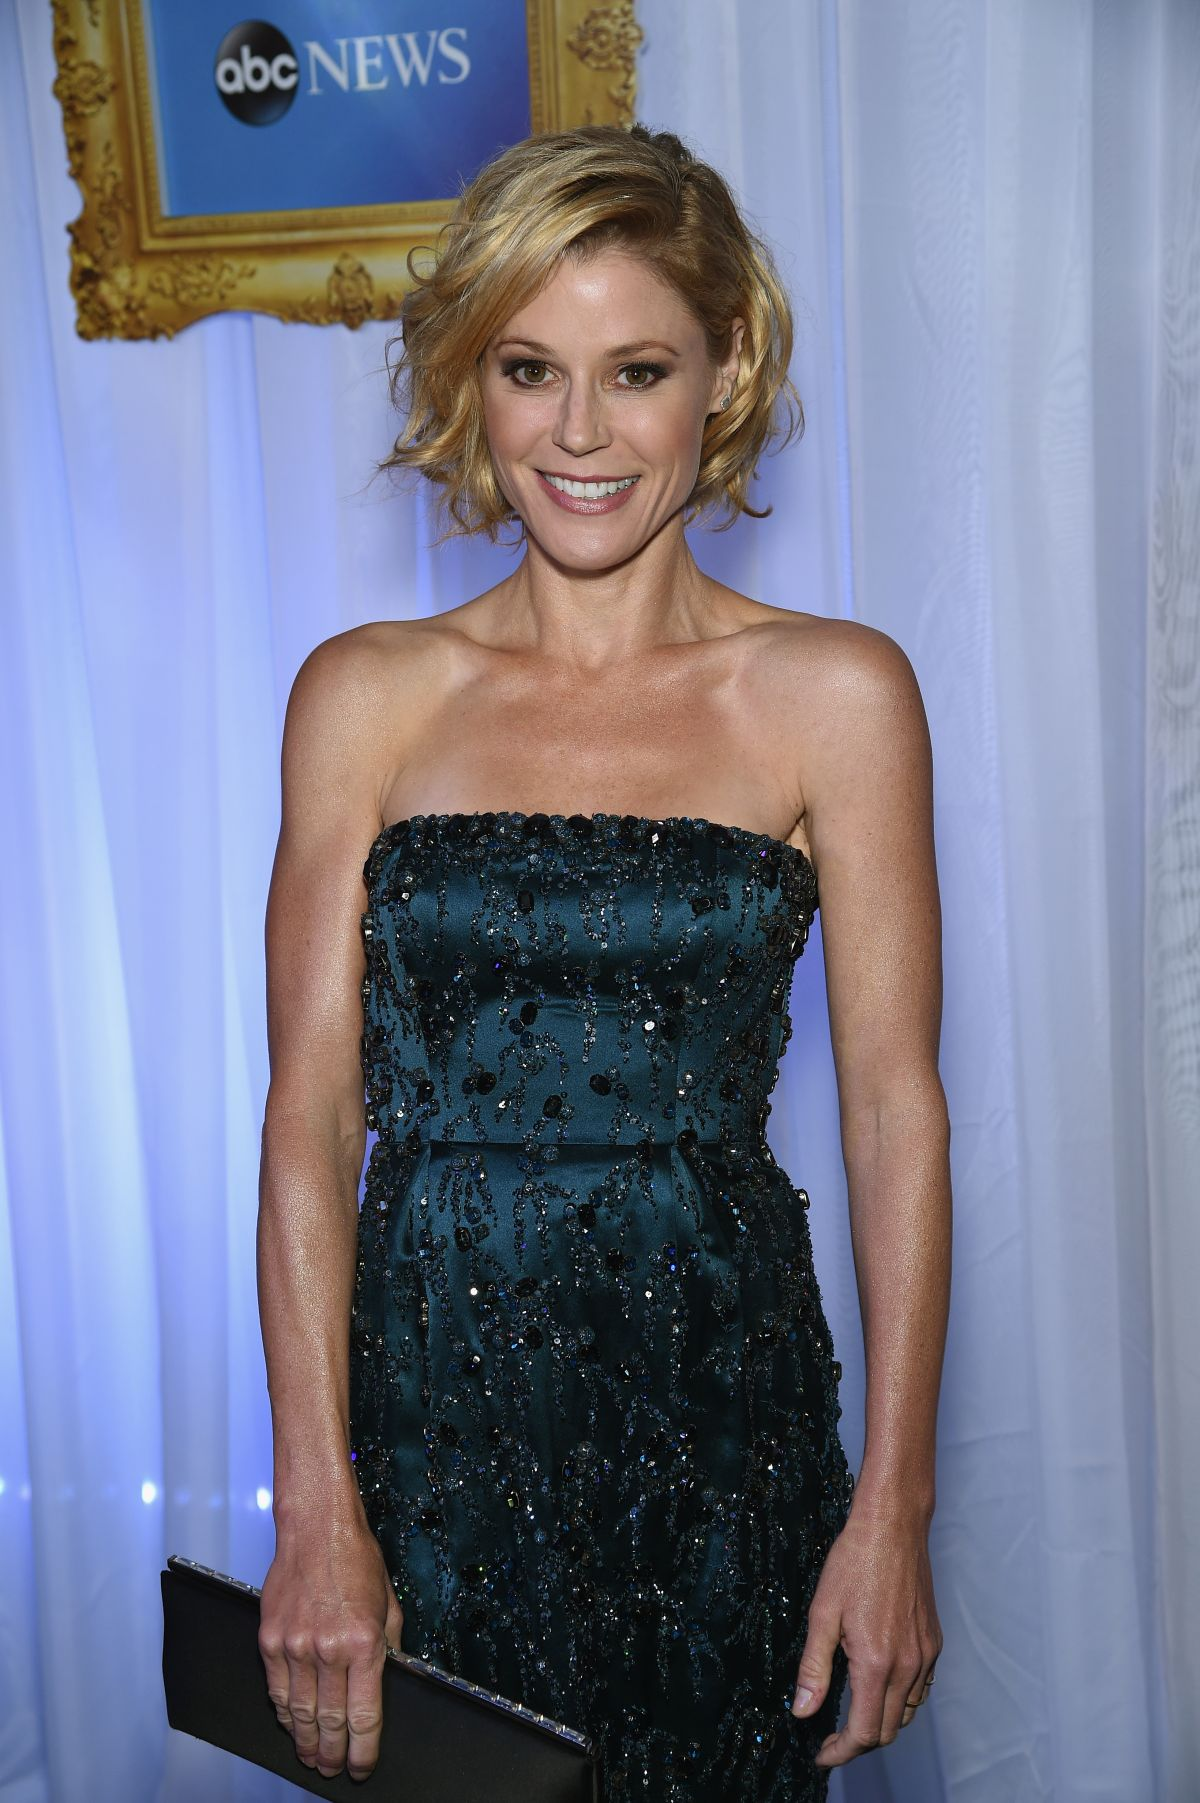 JULIE BOWEN at White House Correspondents Association Dinner in Washington